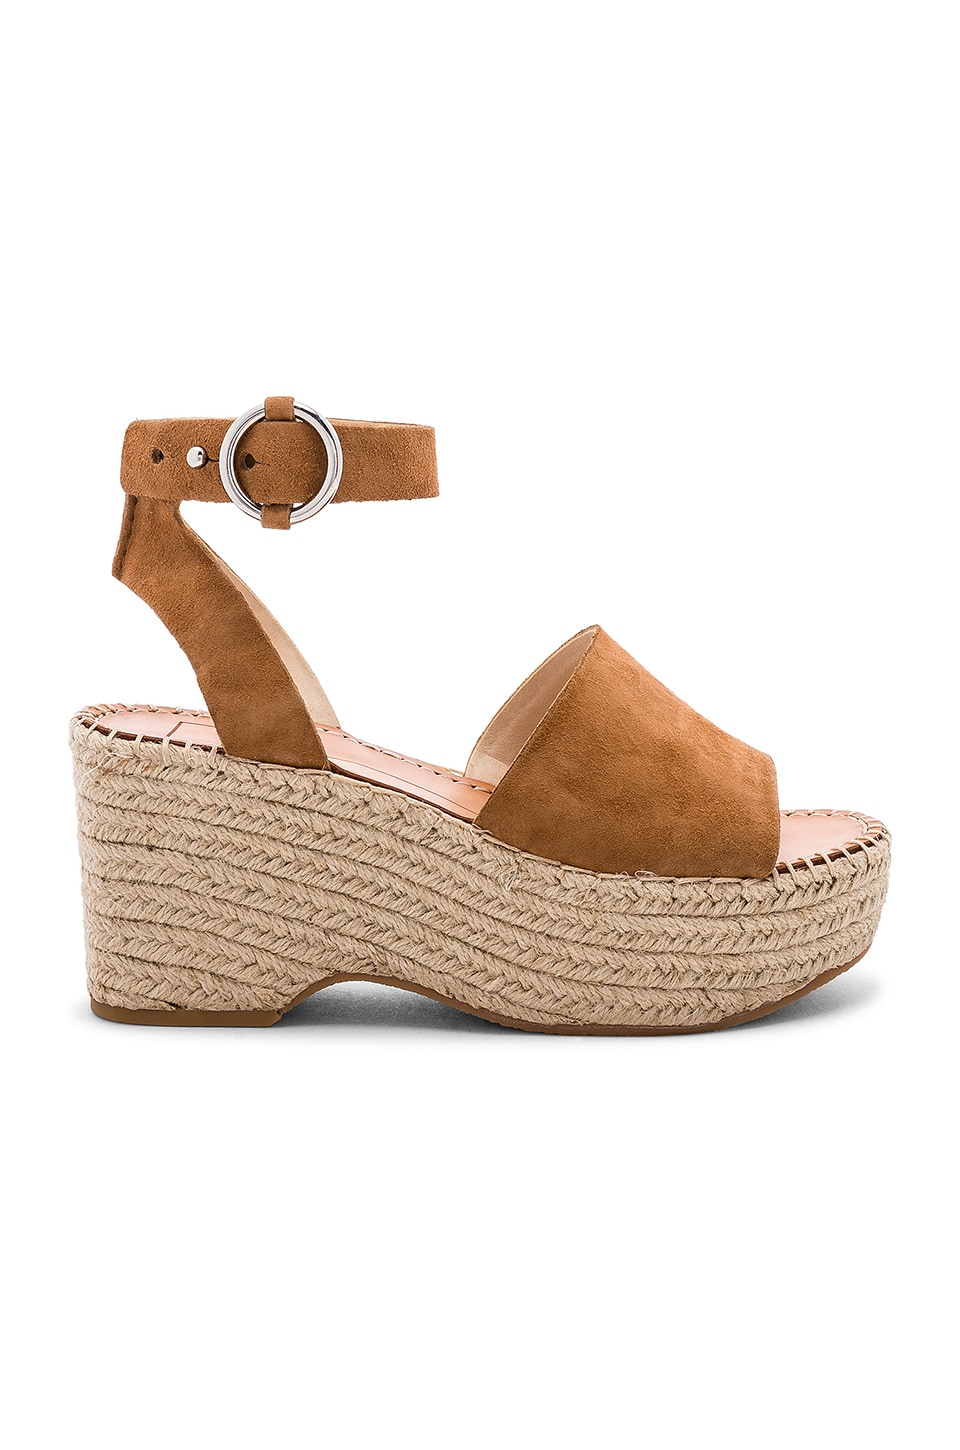 Dolce Vita Lesly Wedge in Saddle